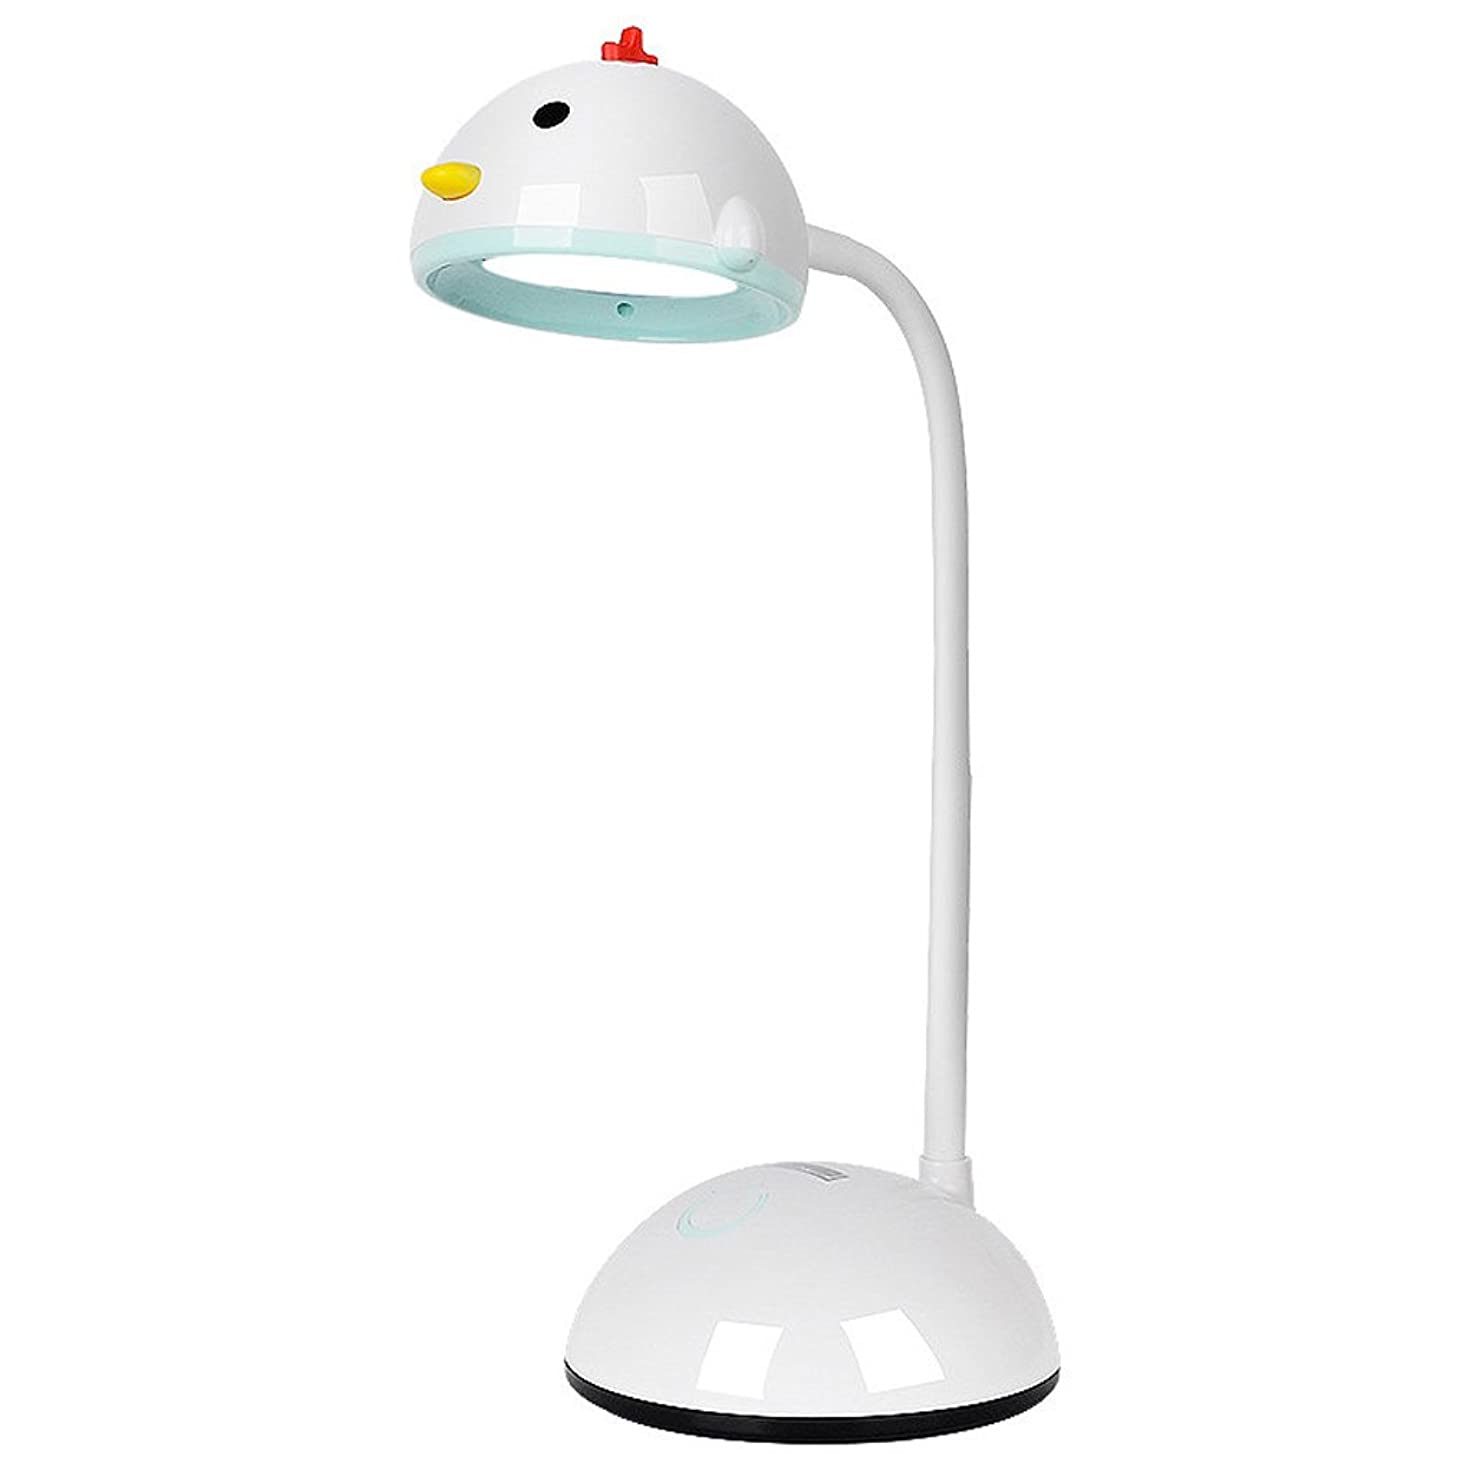 Bright Children LED Desk Lamp 3-Level Dimmable Reading Eye-Care Desk Light ABS Flexible Gooseneck USB Power Lighting System (Color : White)